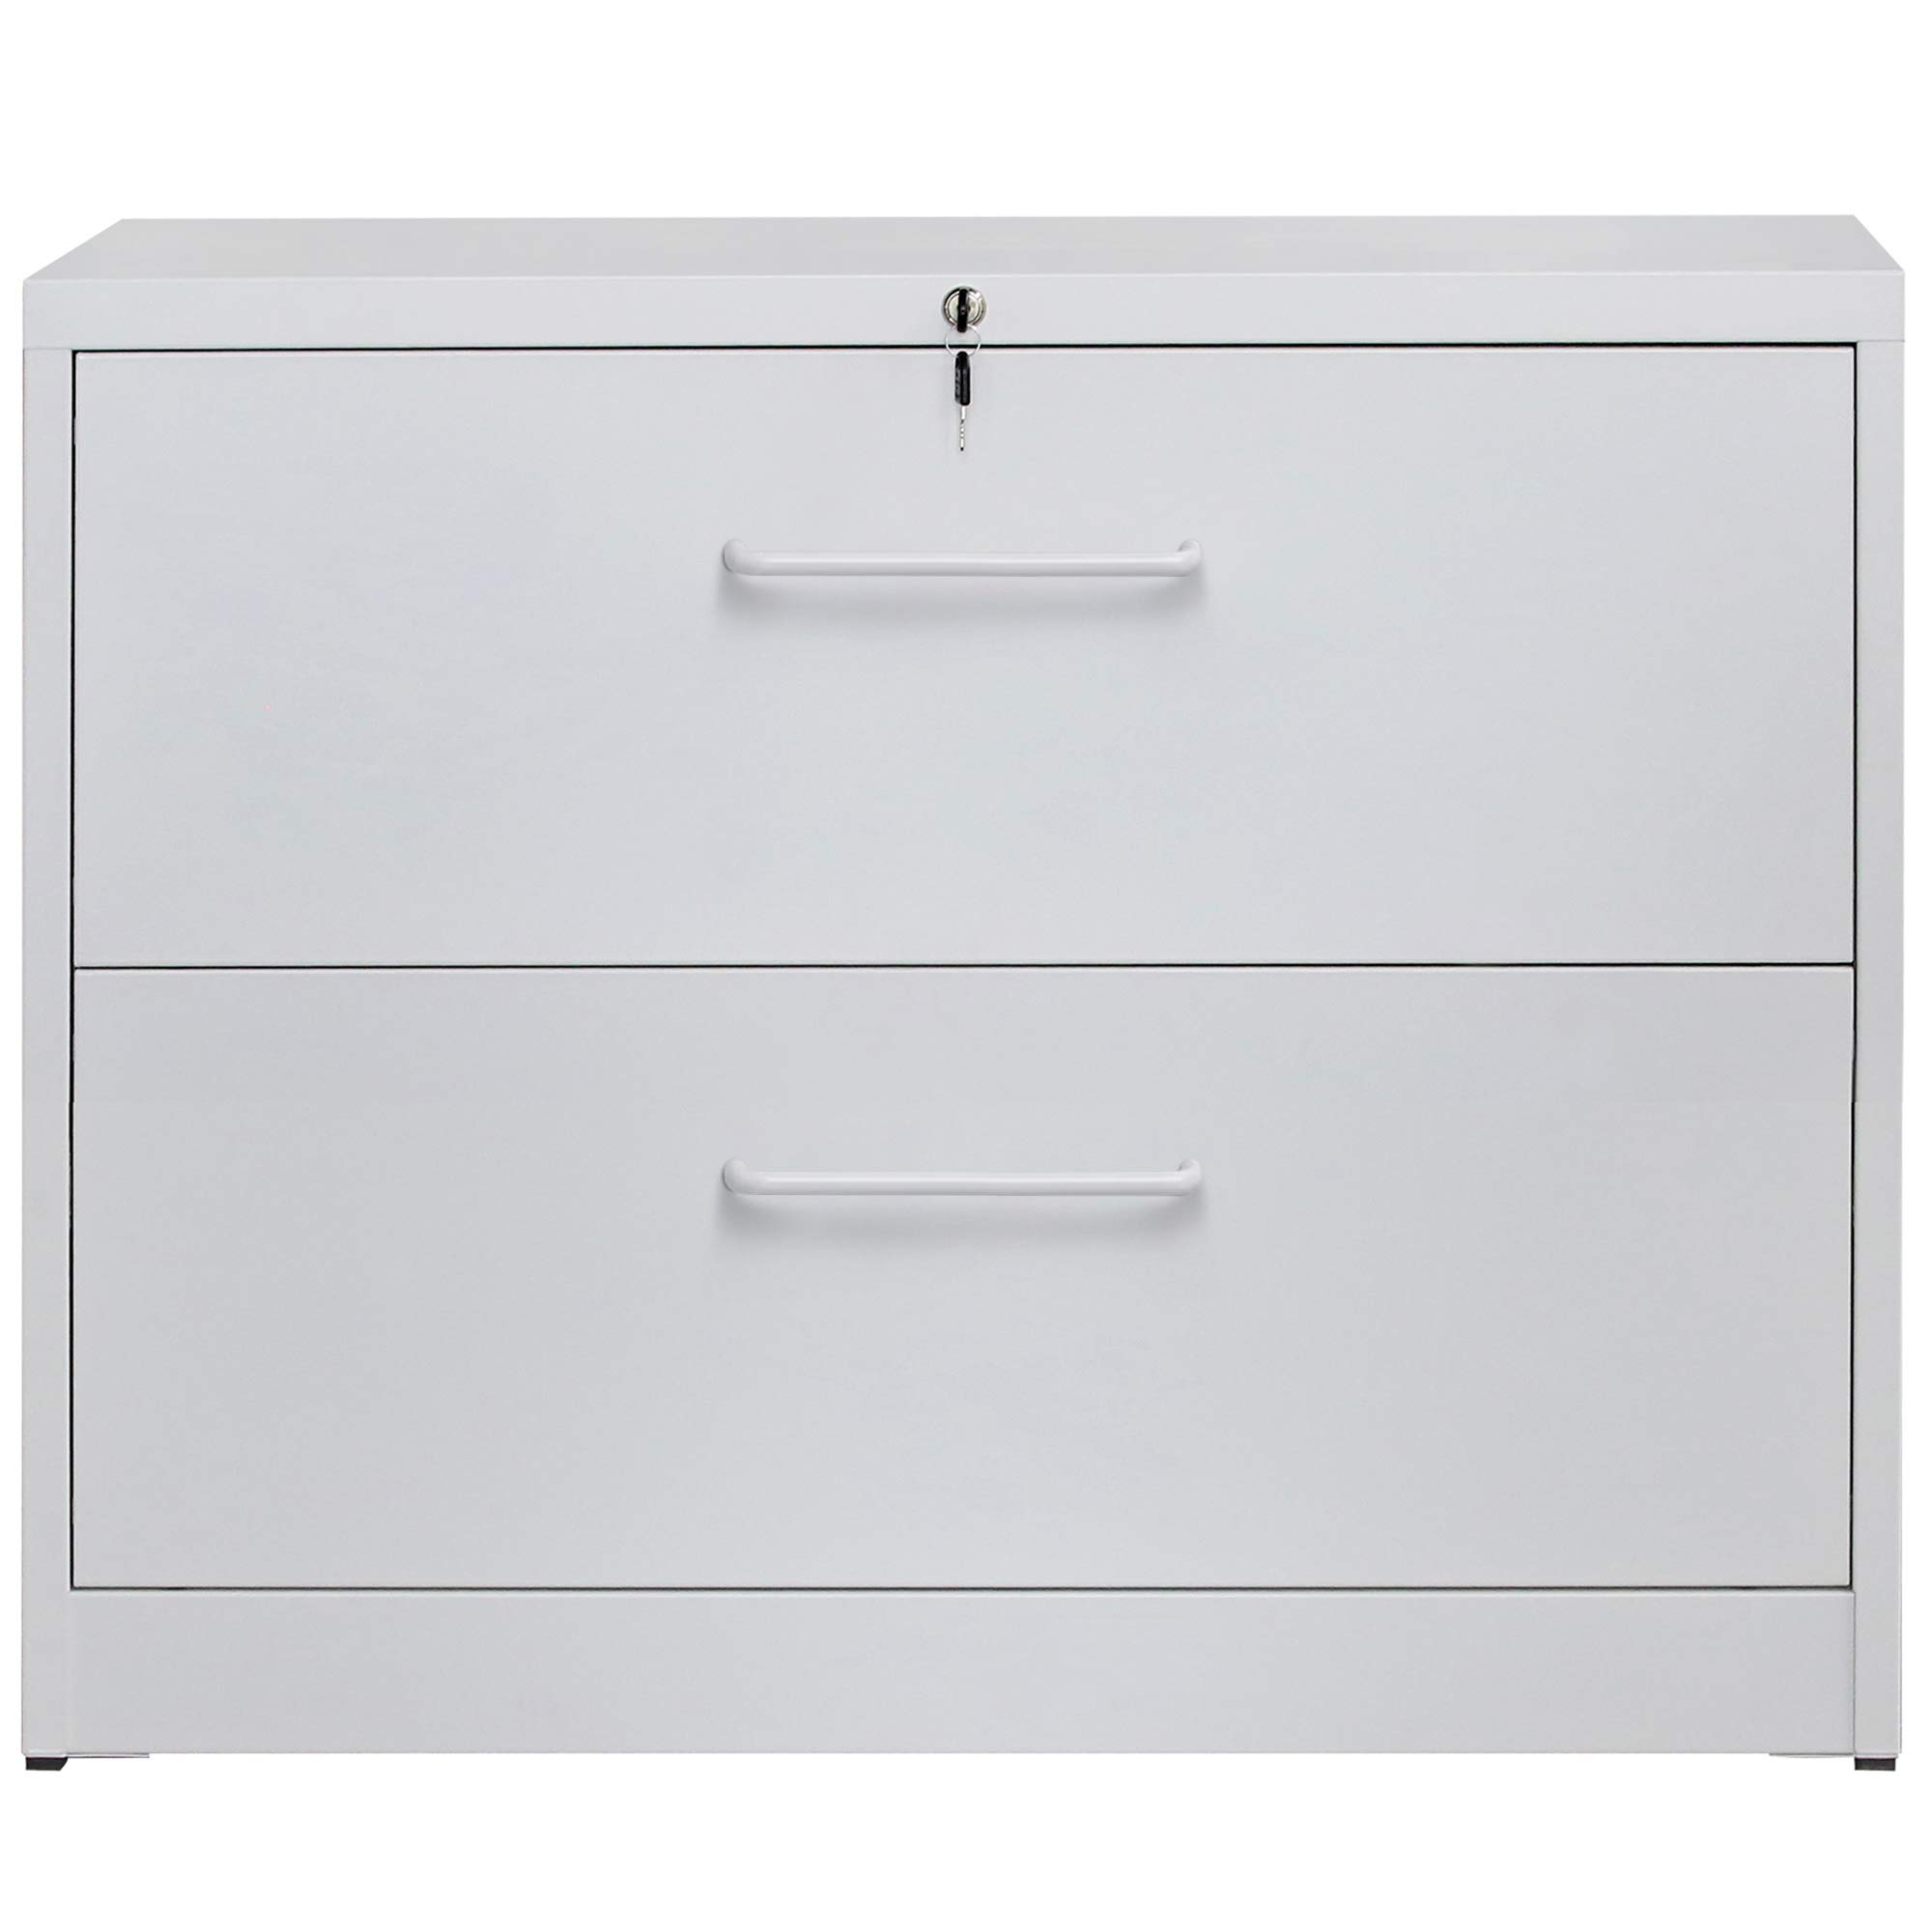 2 Drawers Lateral File Cabinet with Lock, Locking Fireproof Metal Filing Cabinet for Home and Office, White by ModernLuxe